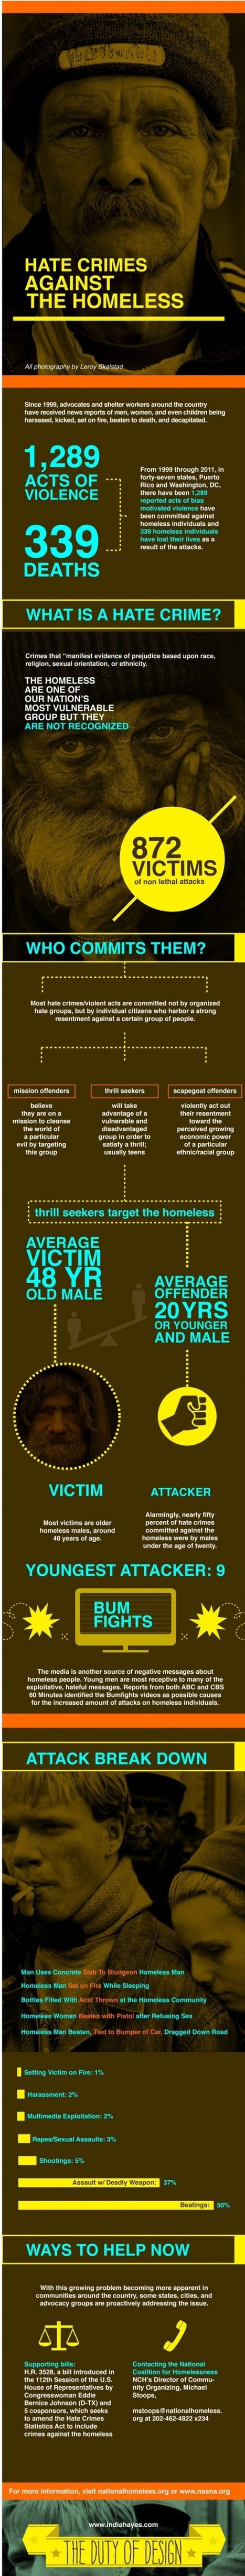 Homeless in the US: One of the most vulnerable groups (Infographic) | Awareness 4 Social Good | Scoop.it